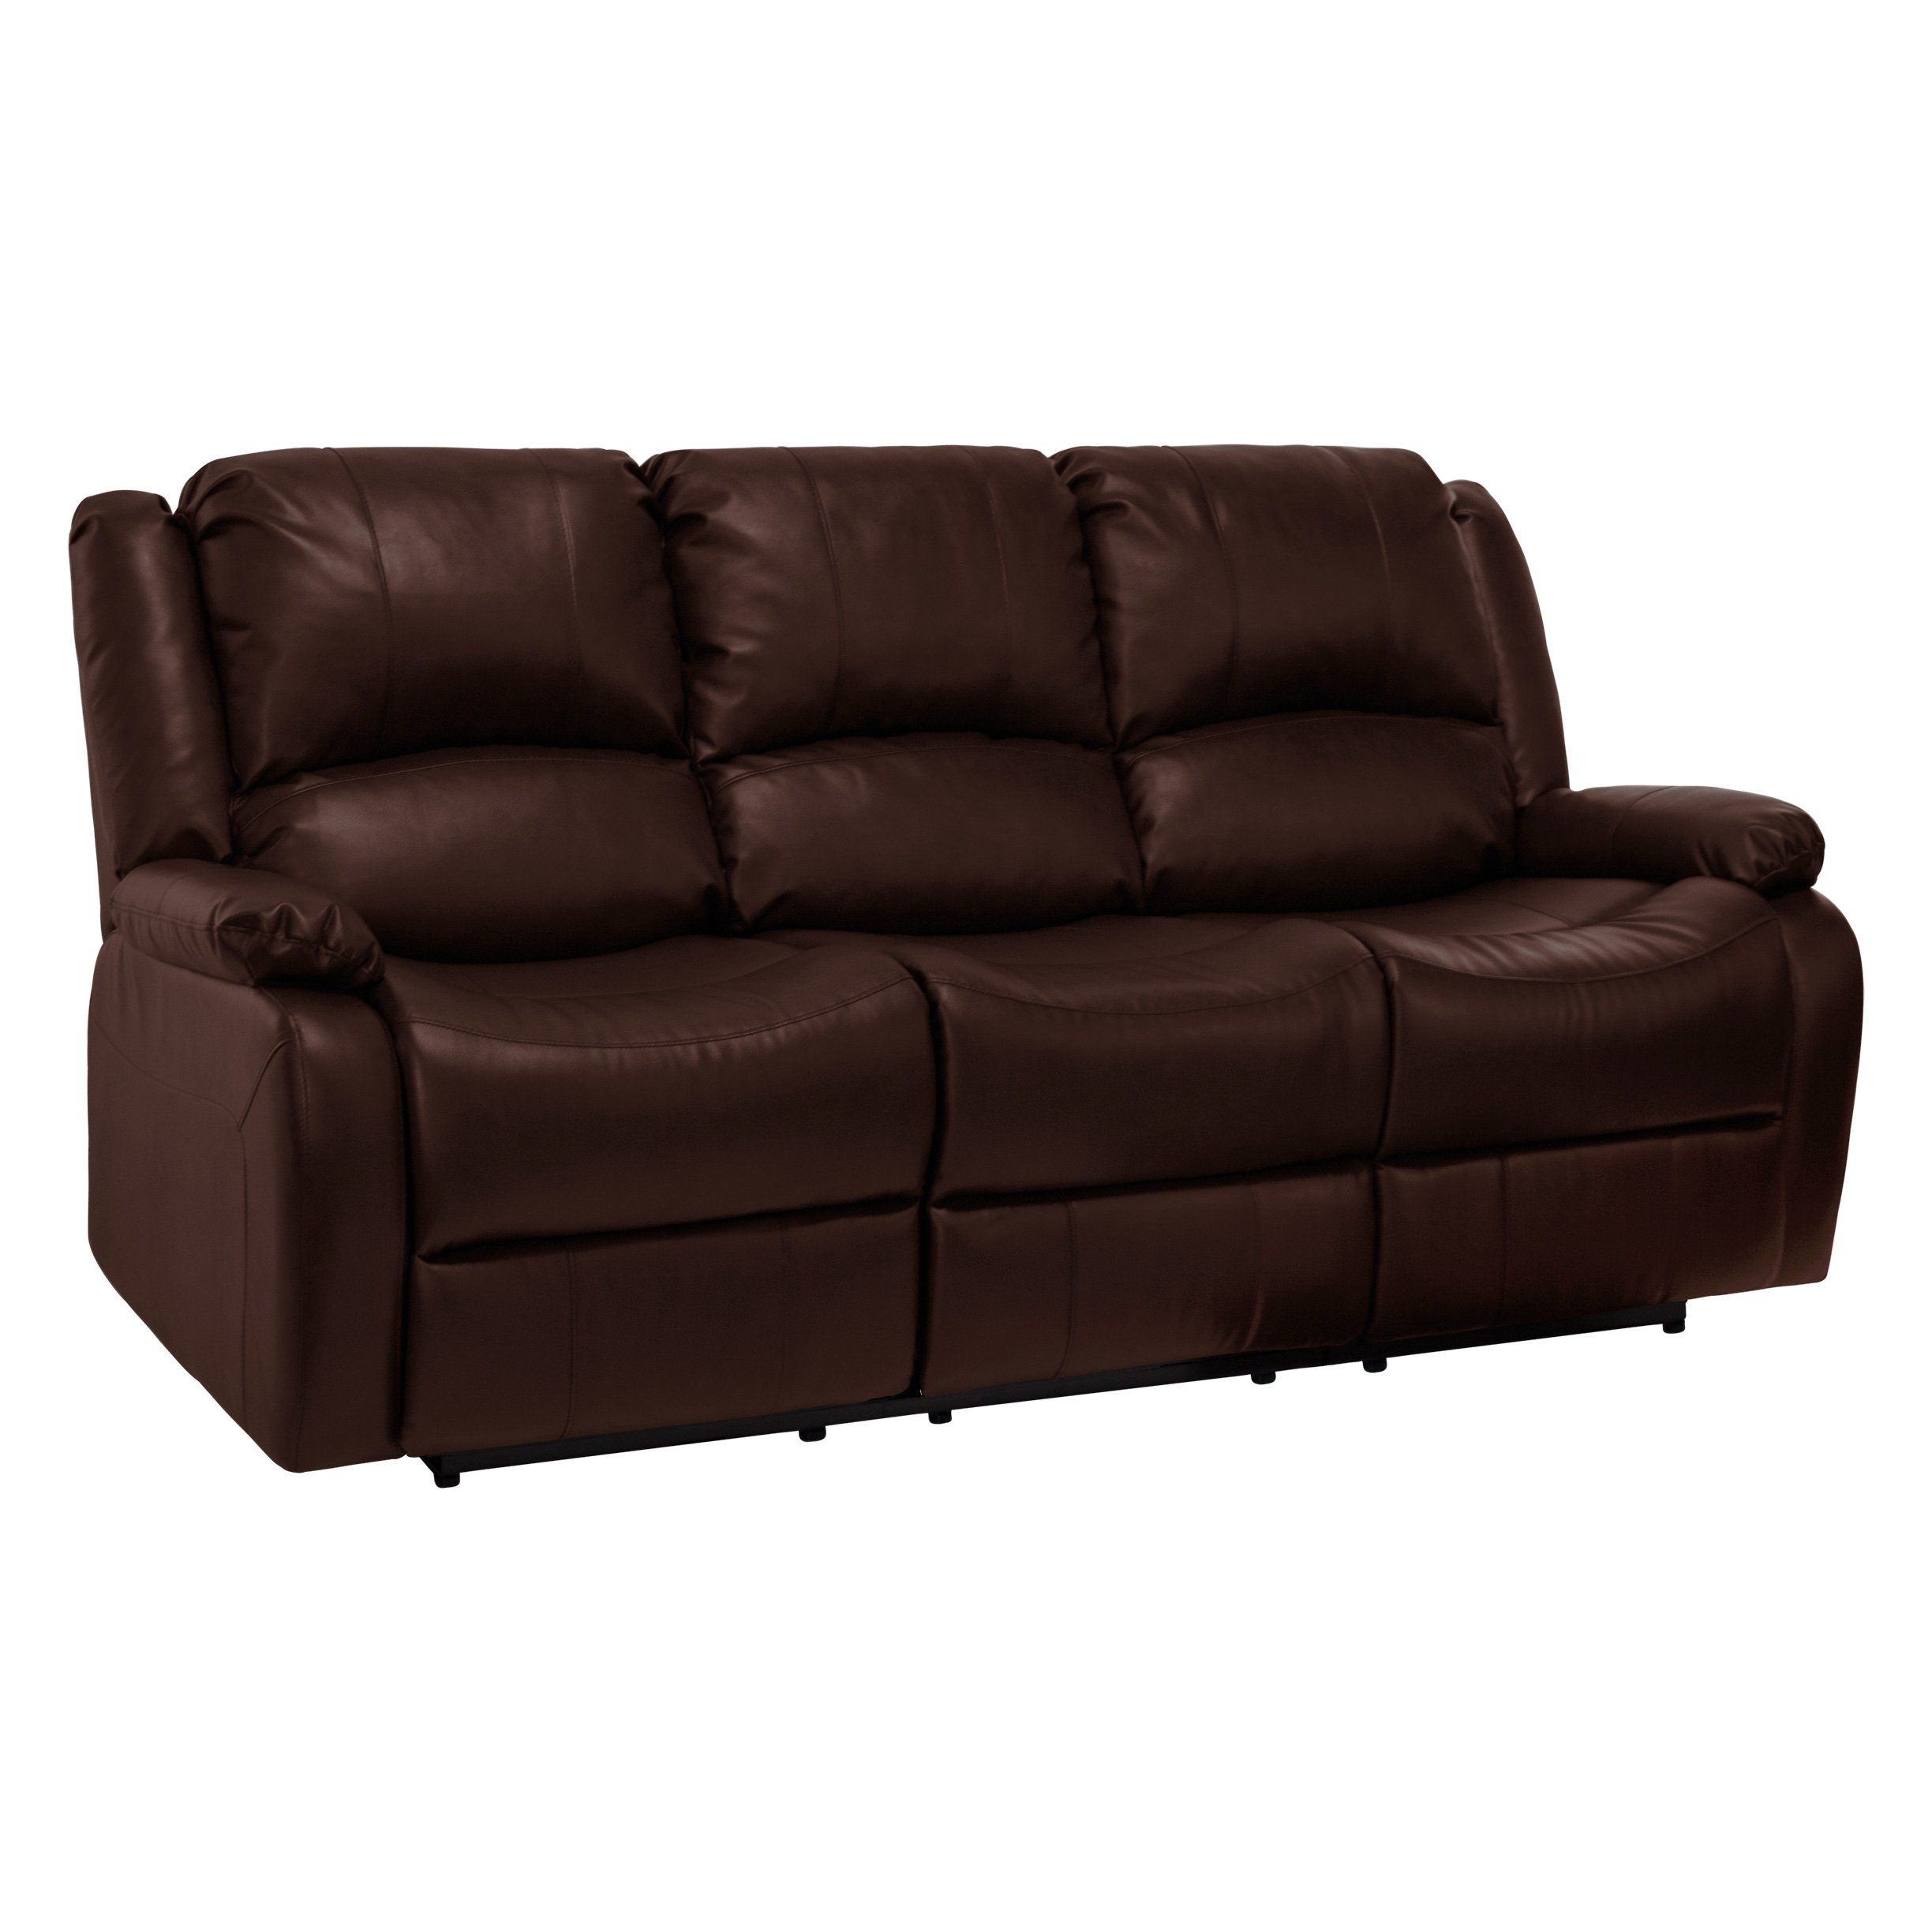 Recpro Charles 80 Triple Rv Zero Wall Hugger Recliner Sofa W Drop